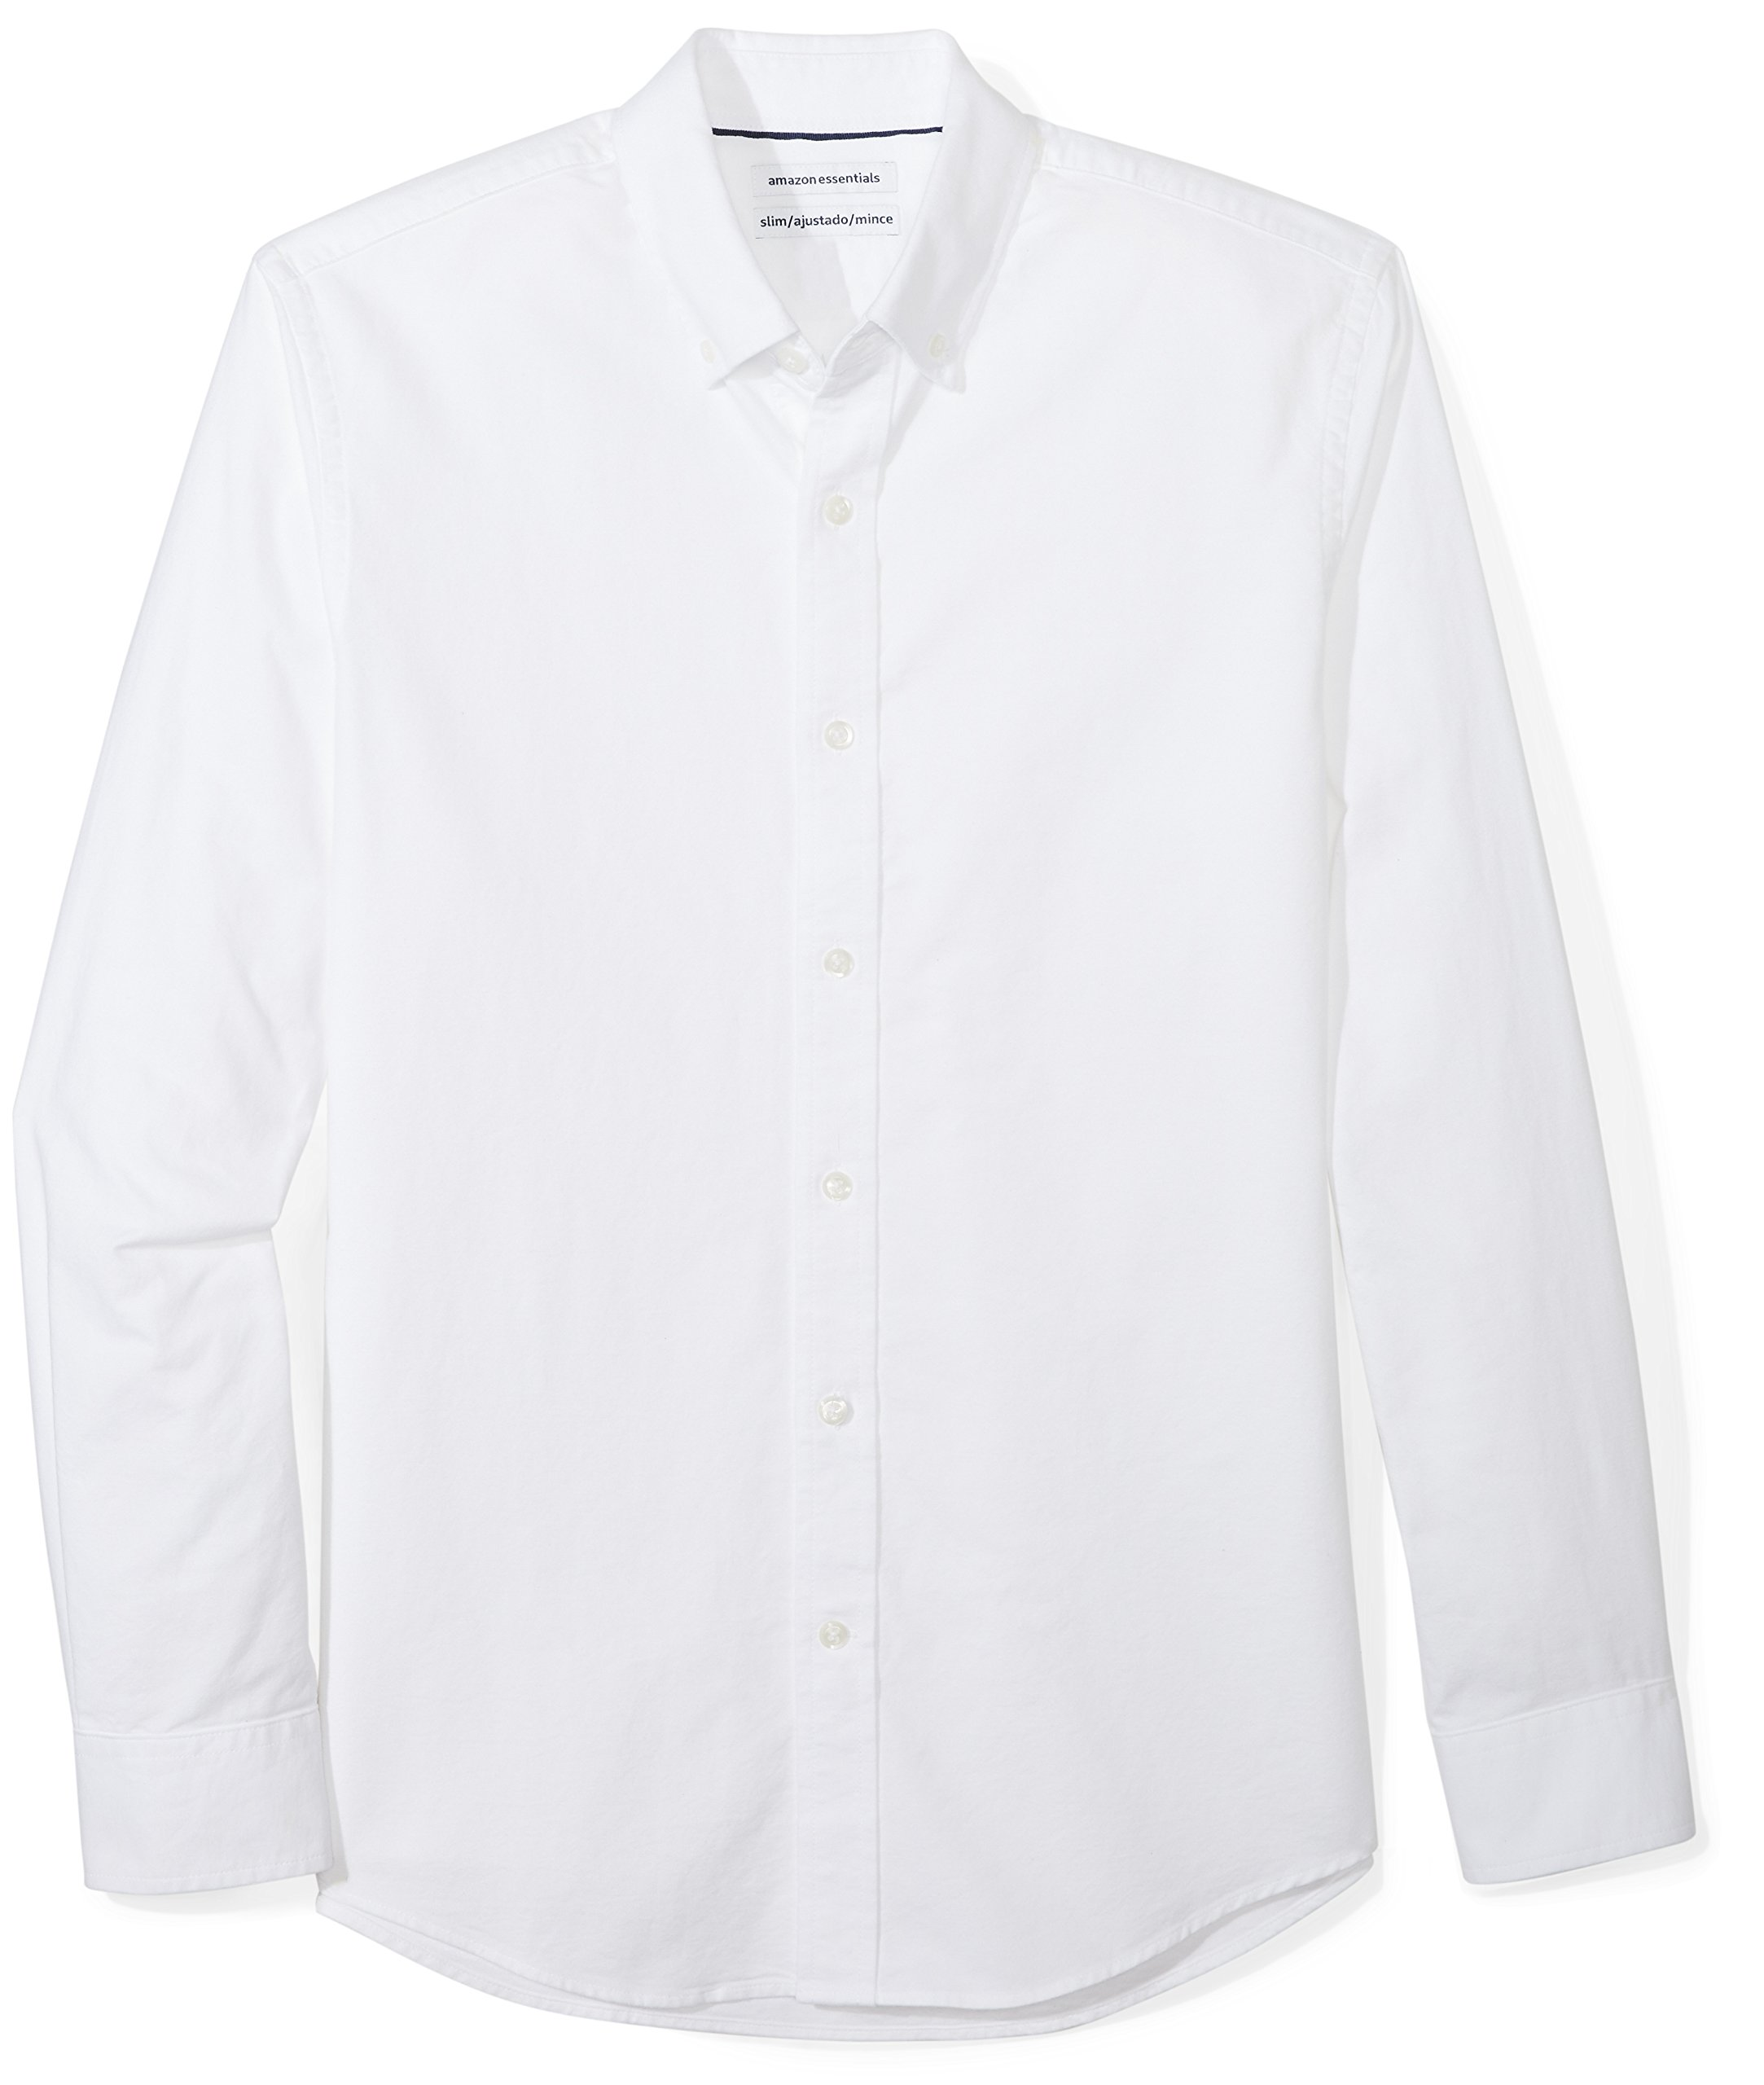 Amazon Essentials Men's Slim-Fit Long-Sleeve Solid Oxford Shirt, White, X-Large